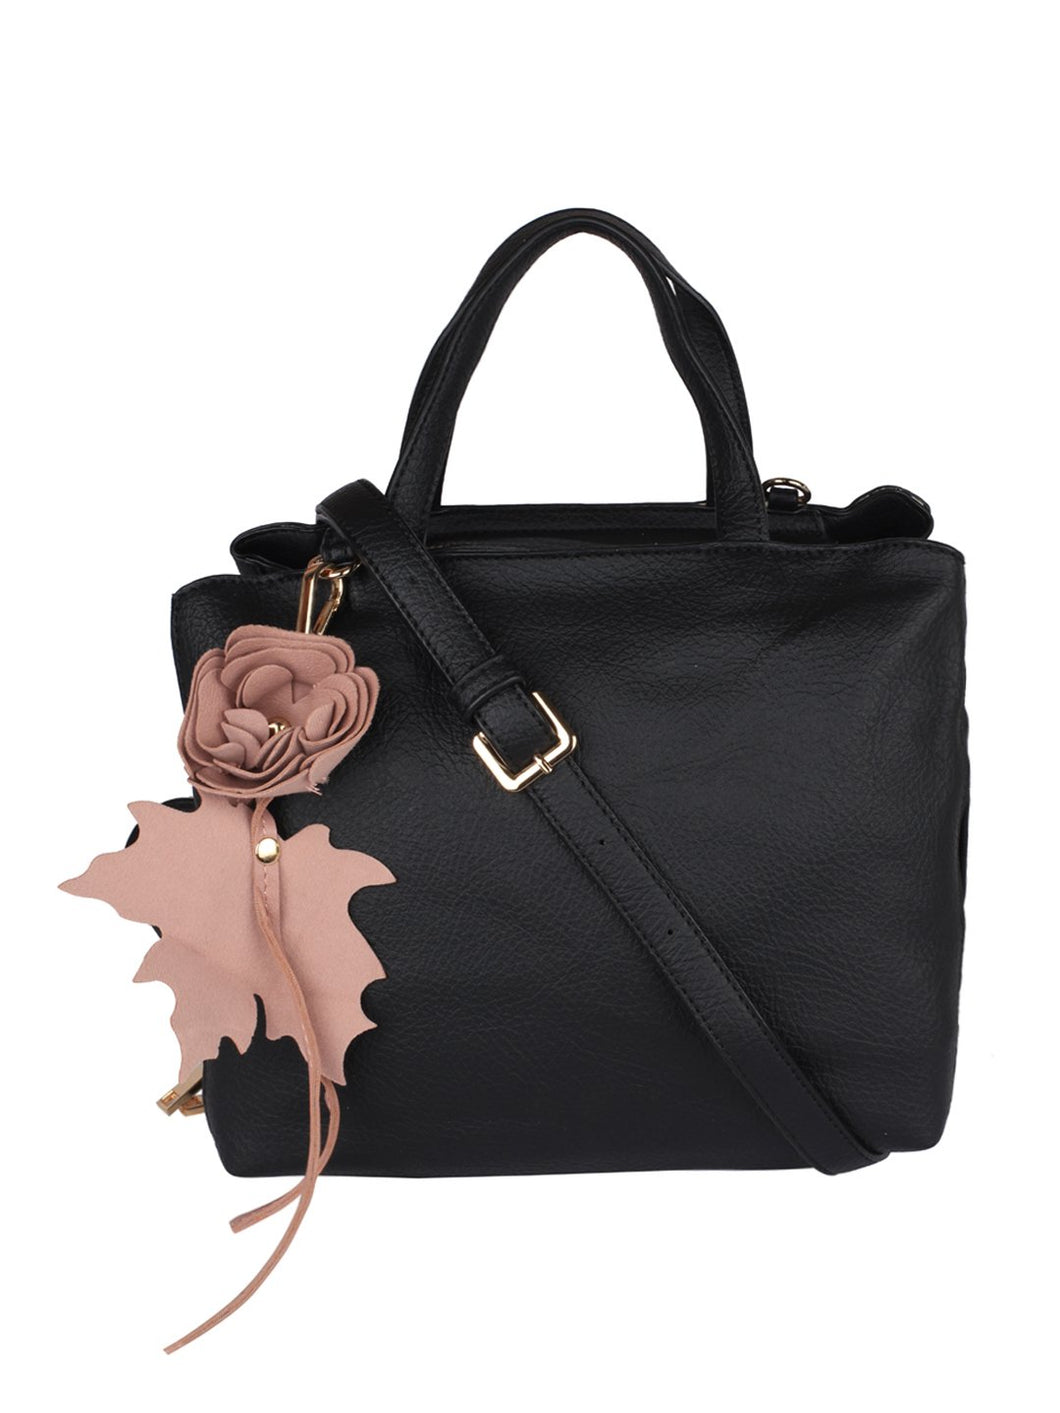 Flower Detail Handbag-Black